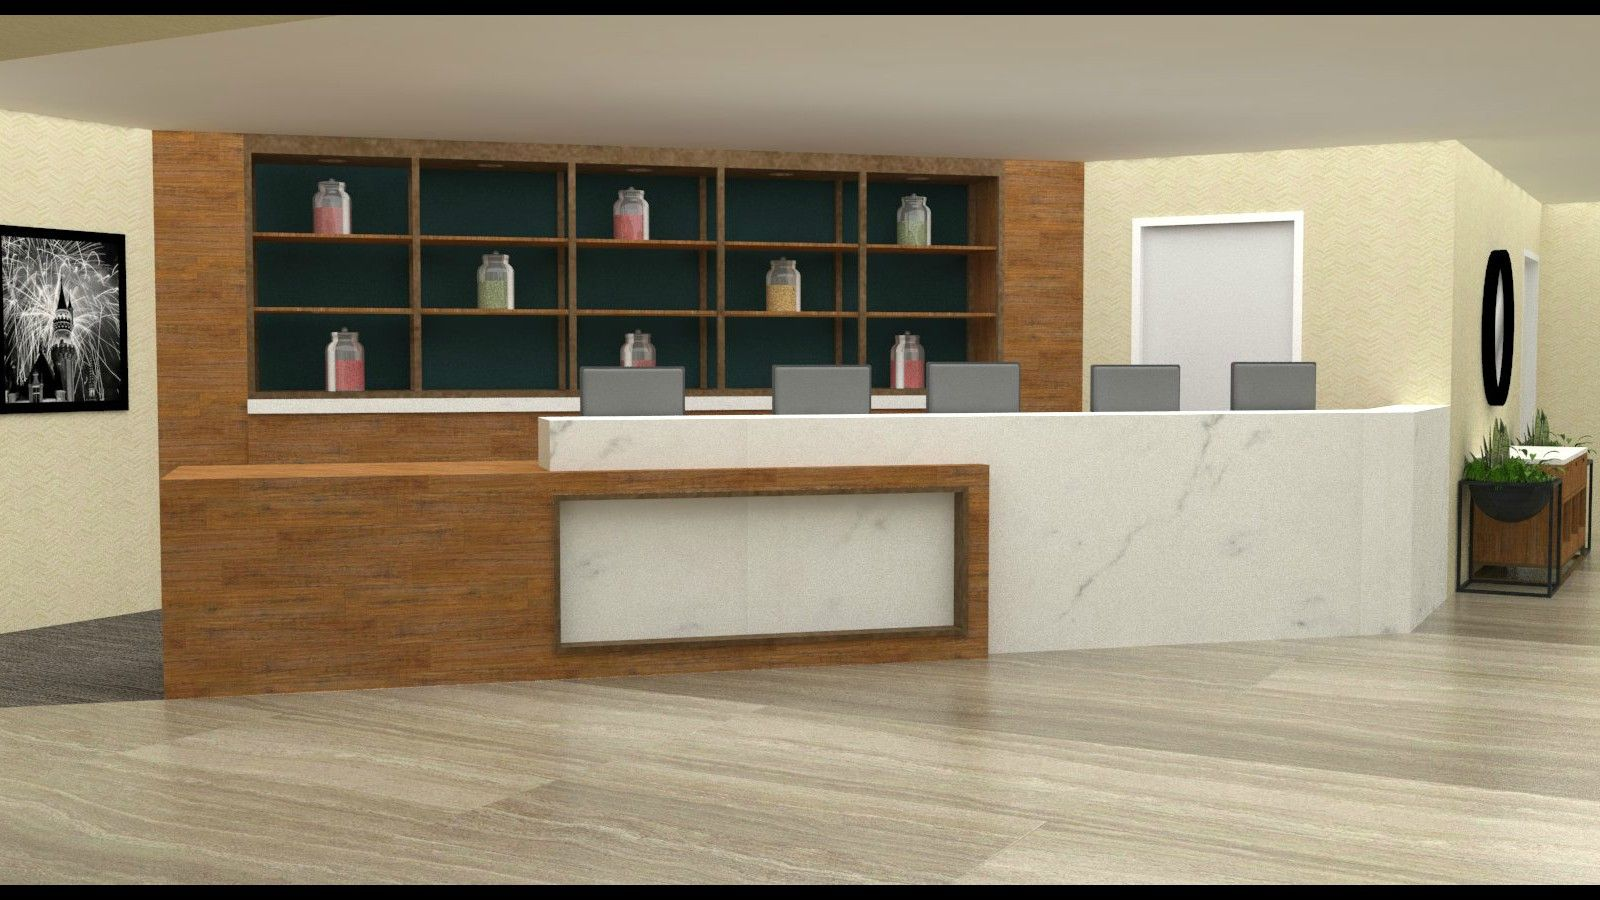 Hotel Ménage - Front Desk Conversion